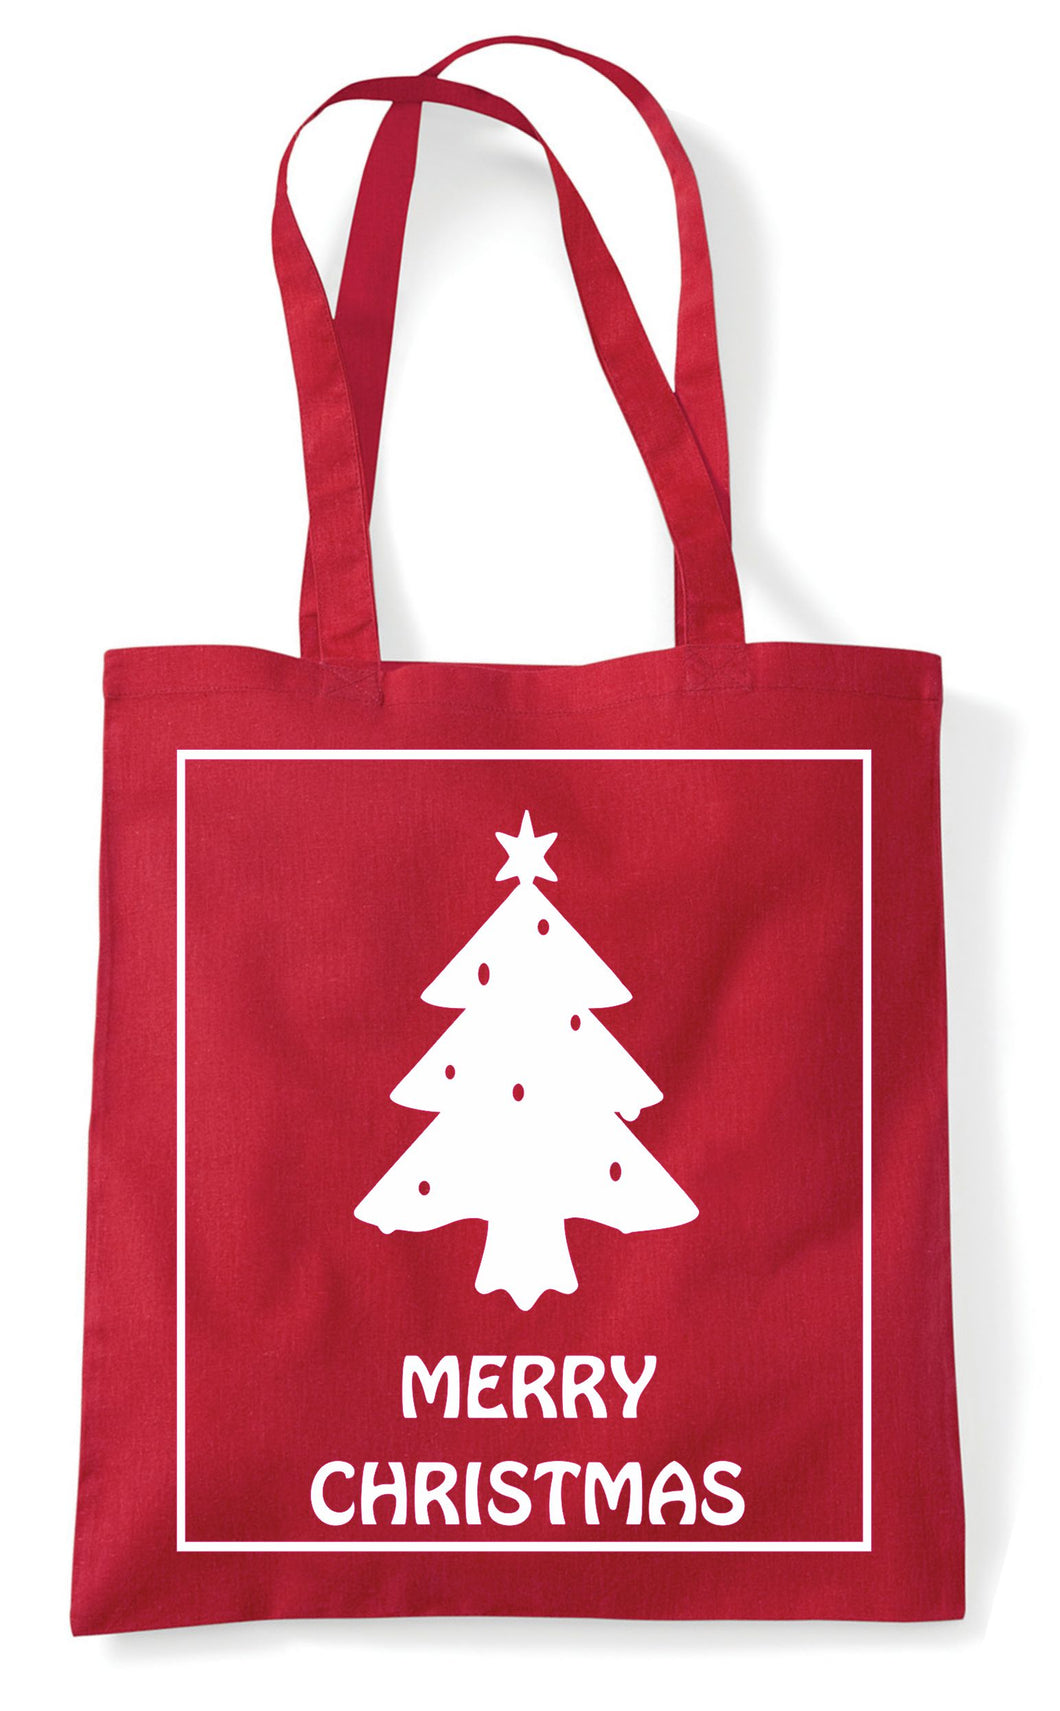 Christmas Tote Bag (Merry Christmas)